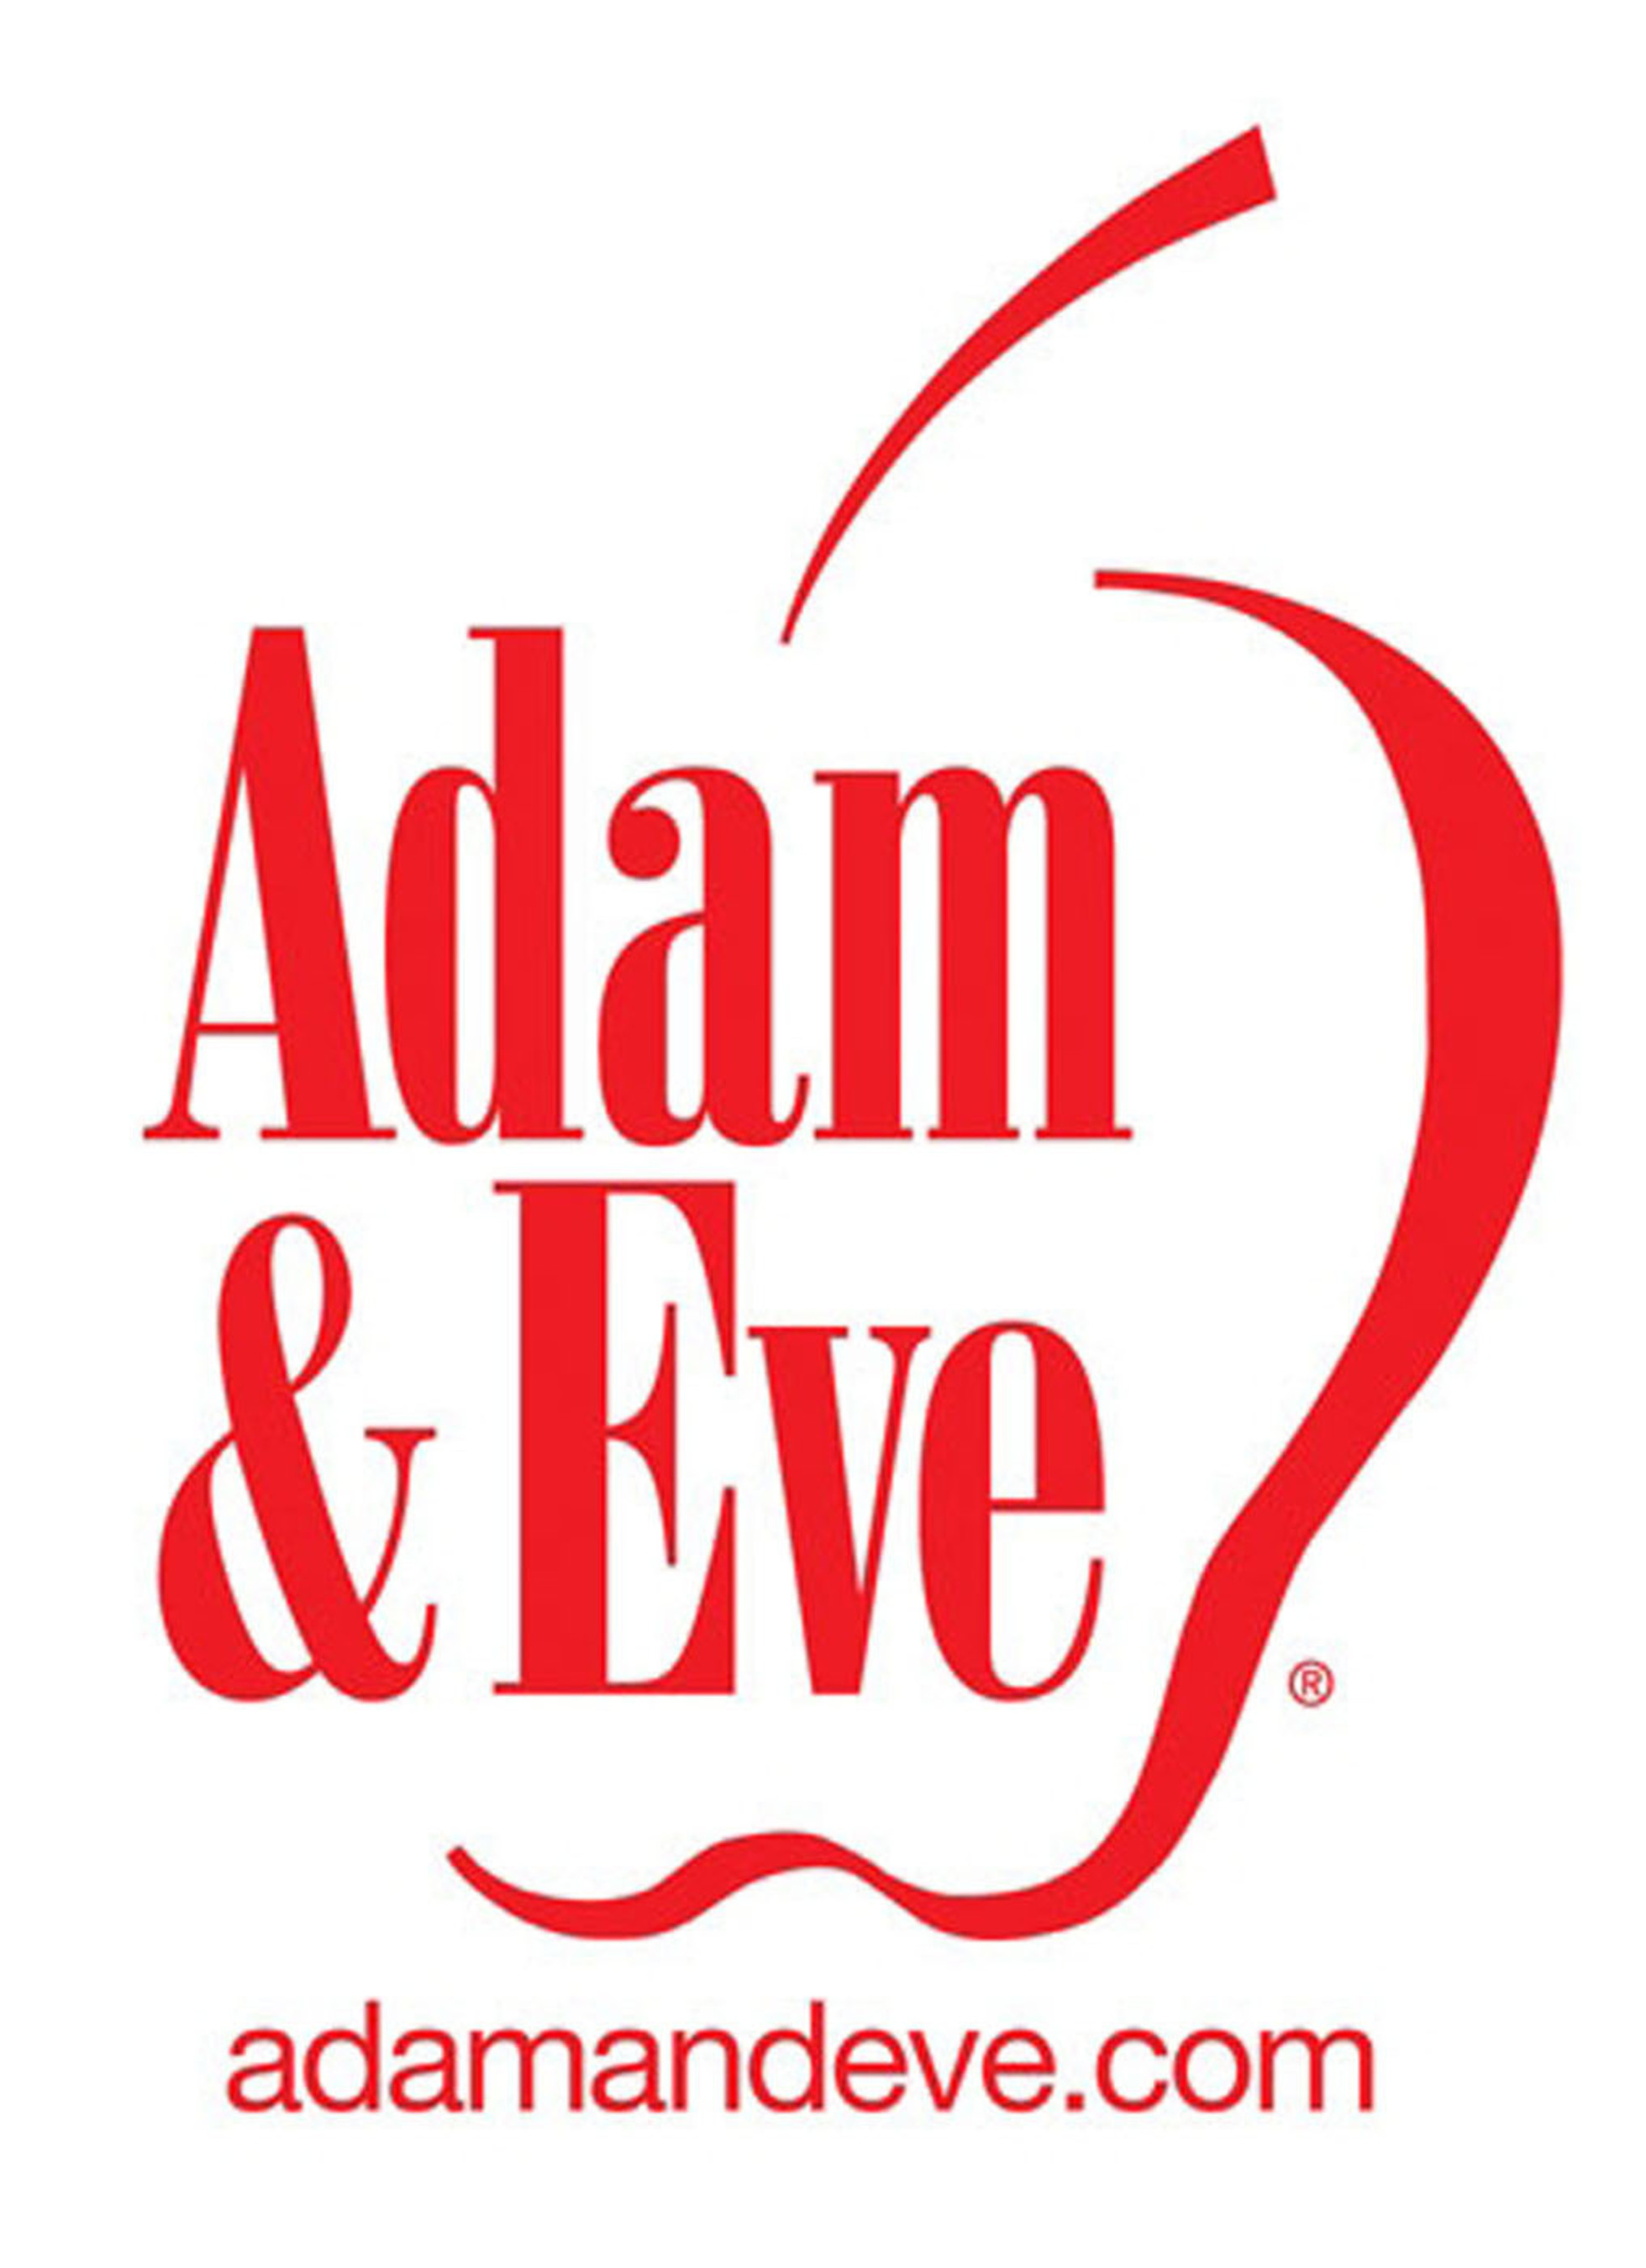 Adam and eve sex toy galleries 713